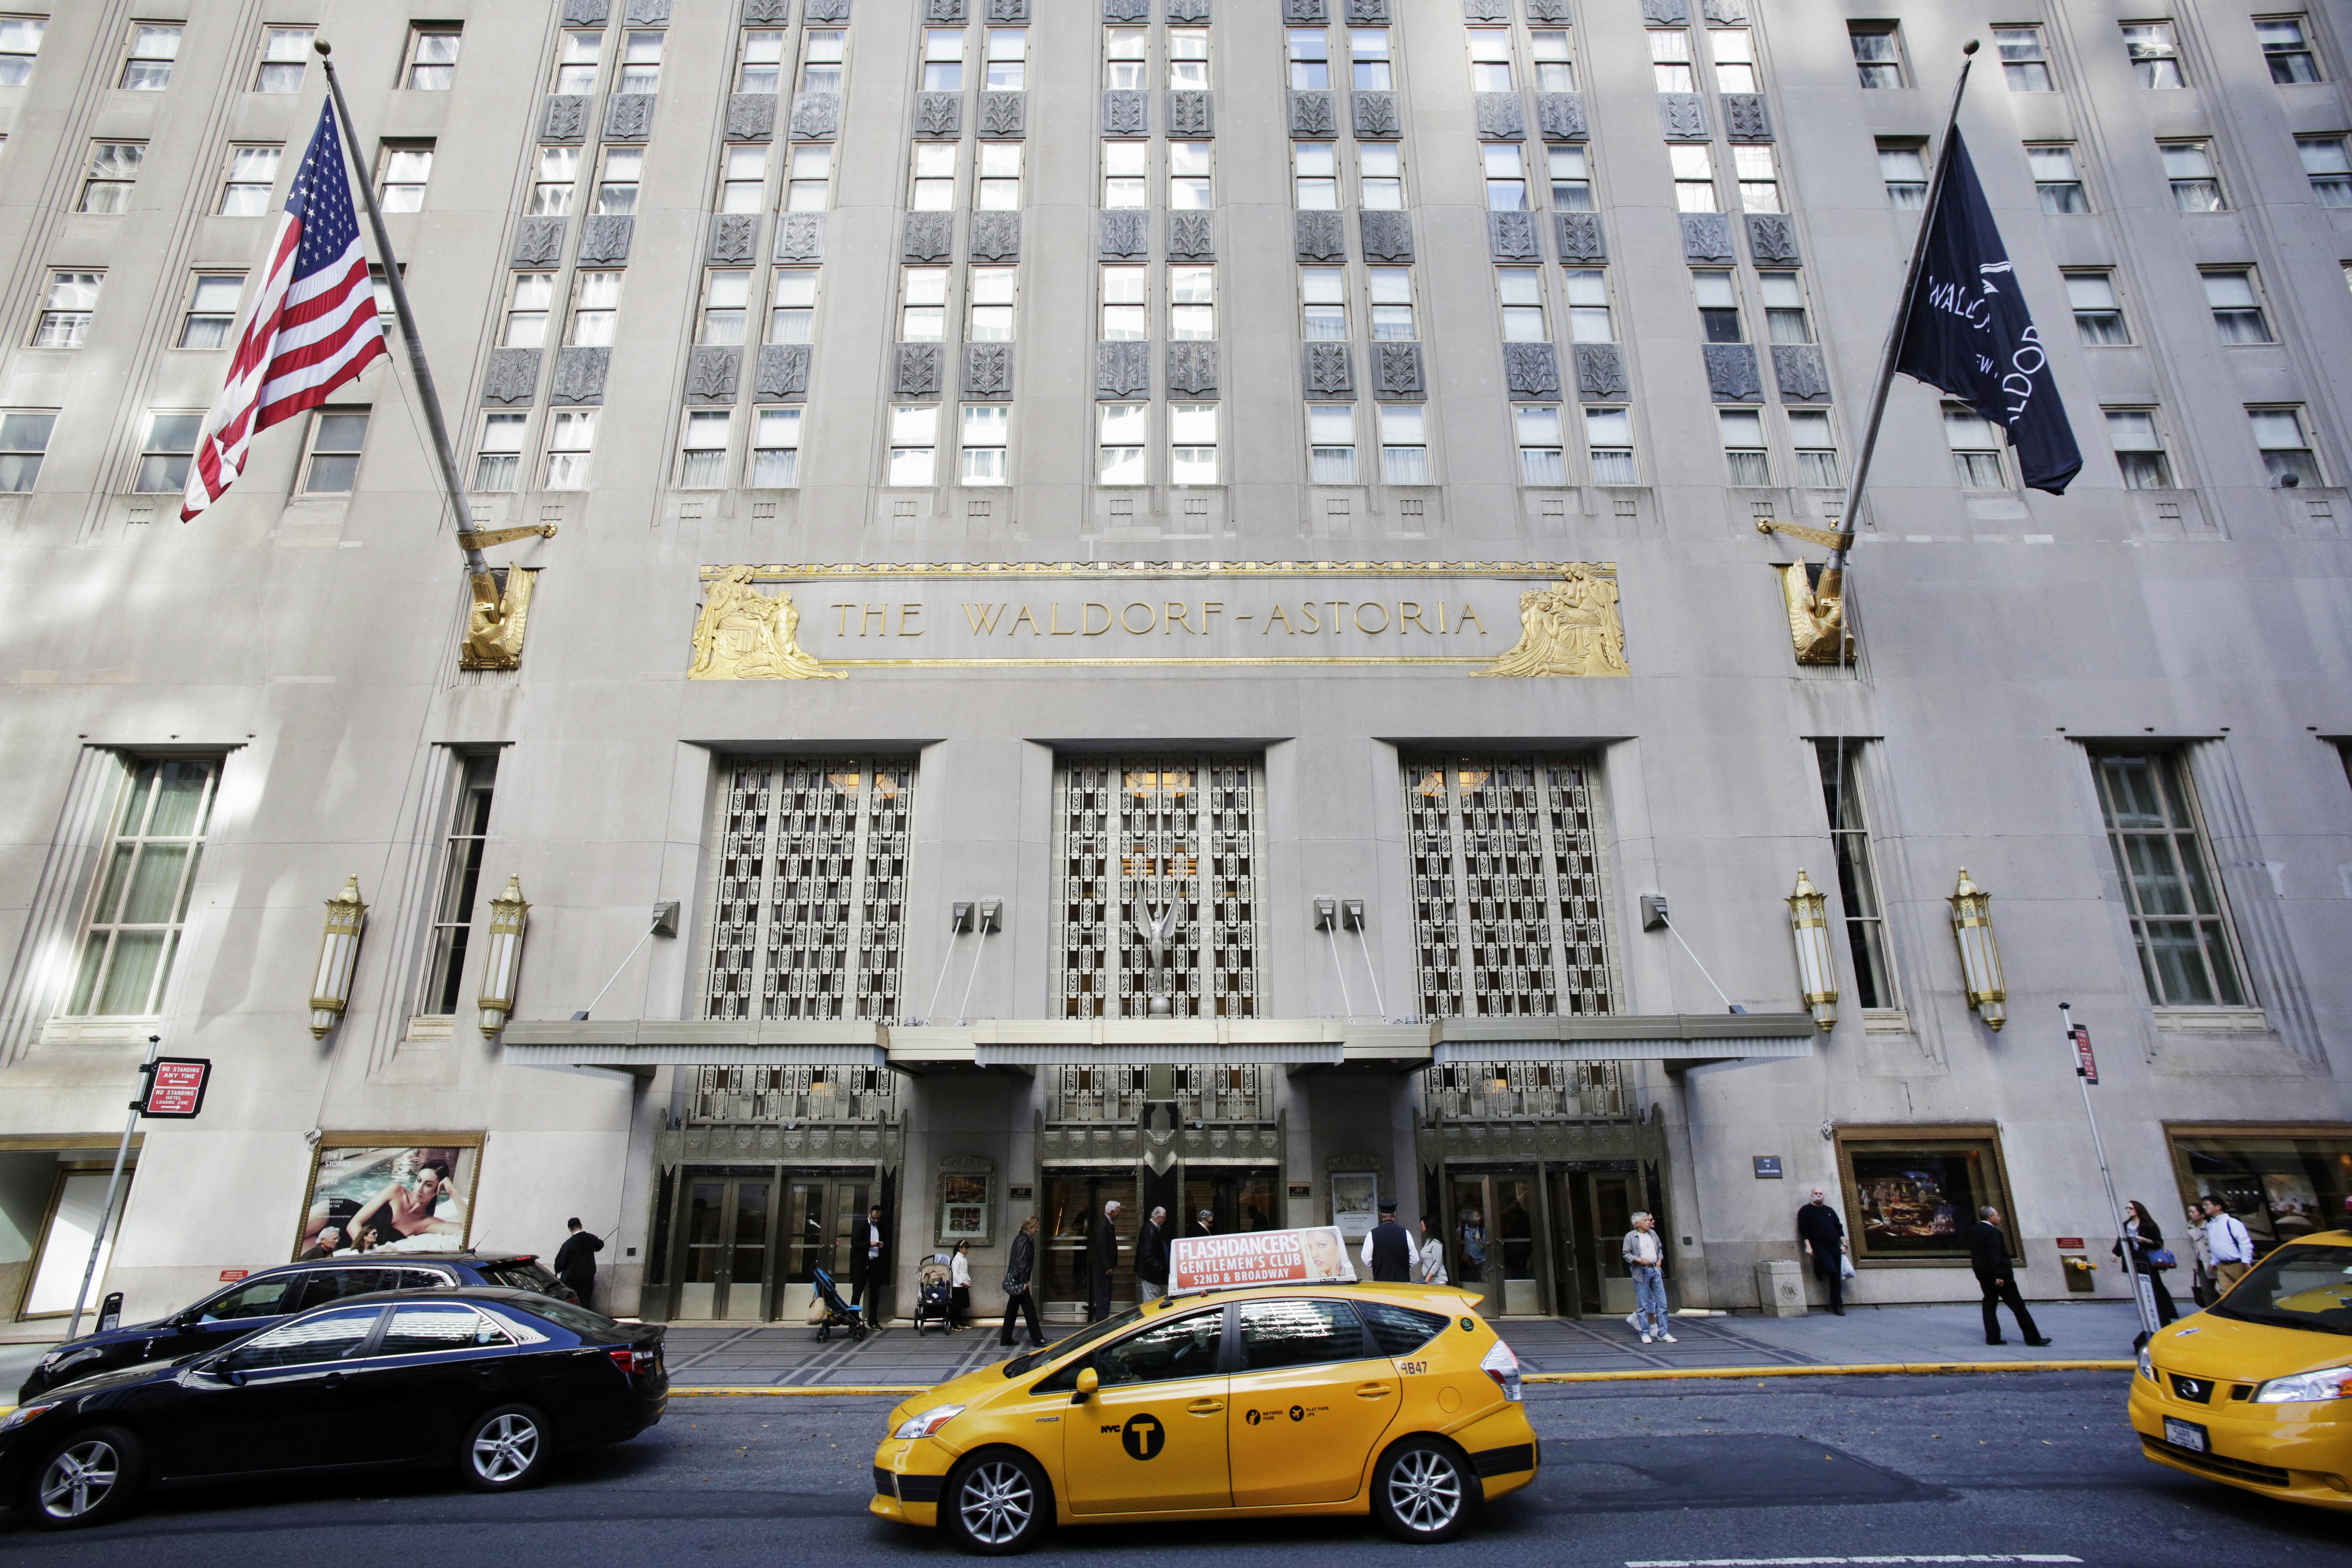 New york hotels booming but there is a problem says experts the waldorf astoria hotel in midtown east in manhattan on oct 6 2014 sciox Image collections